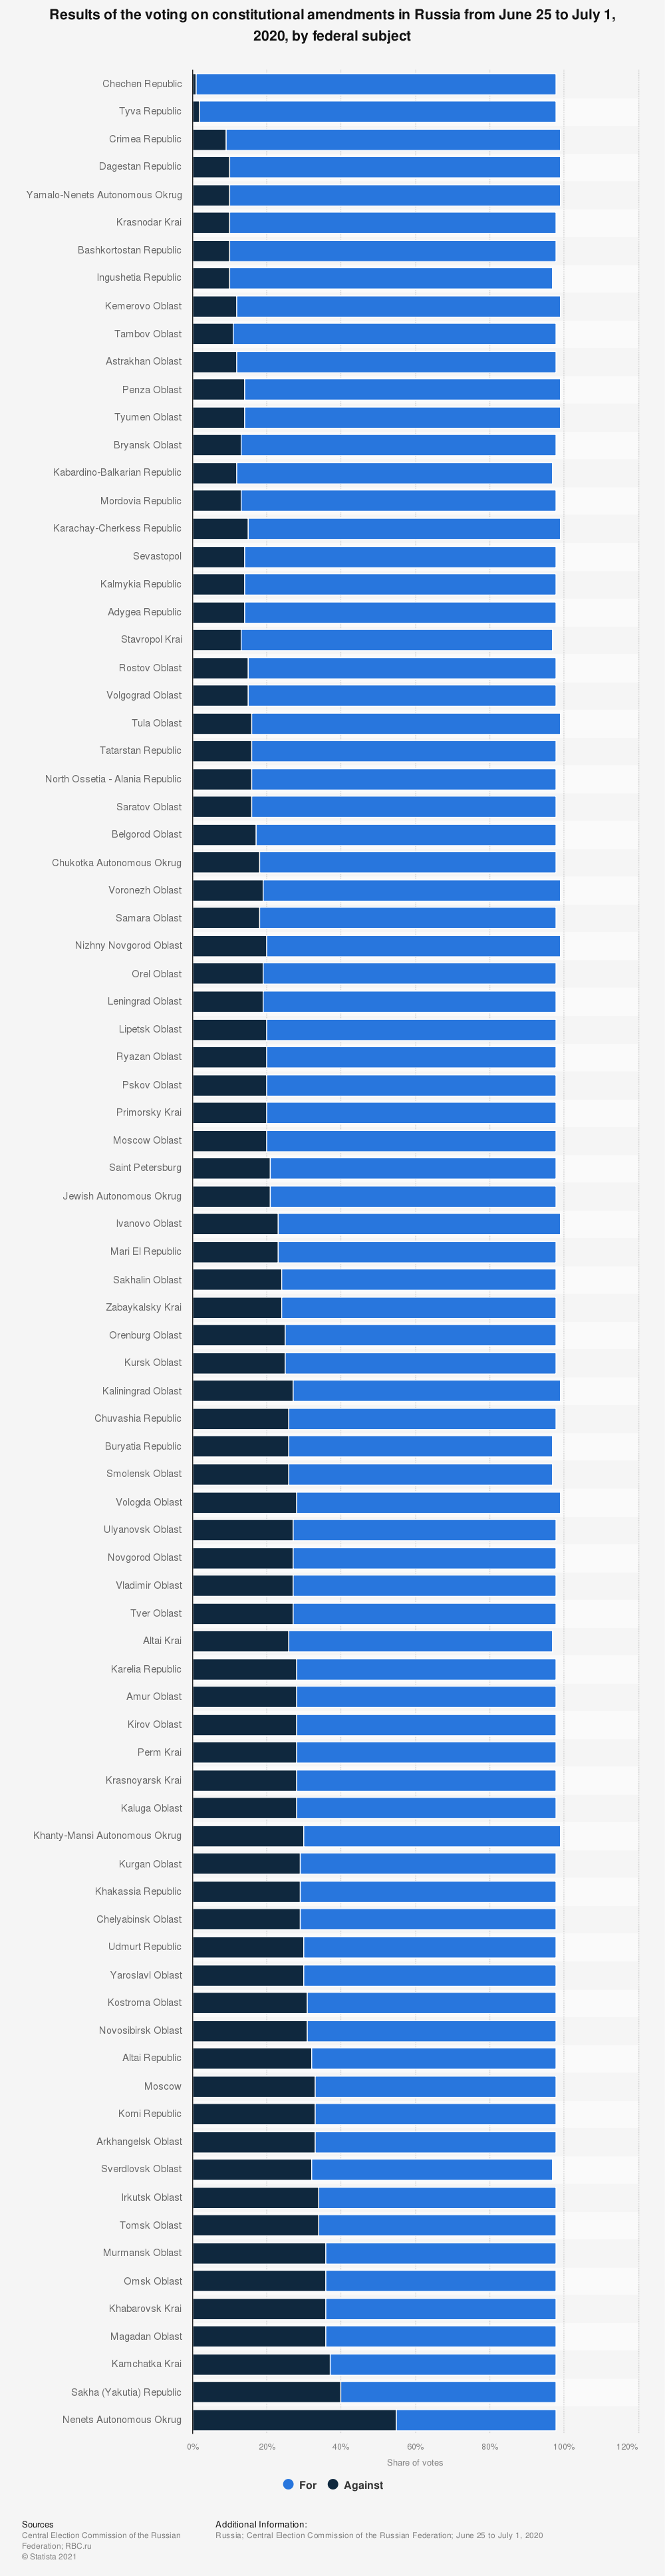 Statistic: Results of the voting on constitutional amendments in Russia from June 25 to July 1, 2020, by federal subject | Statista